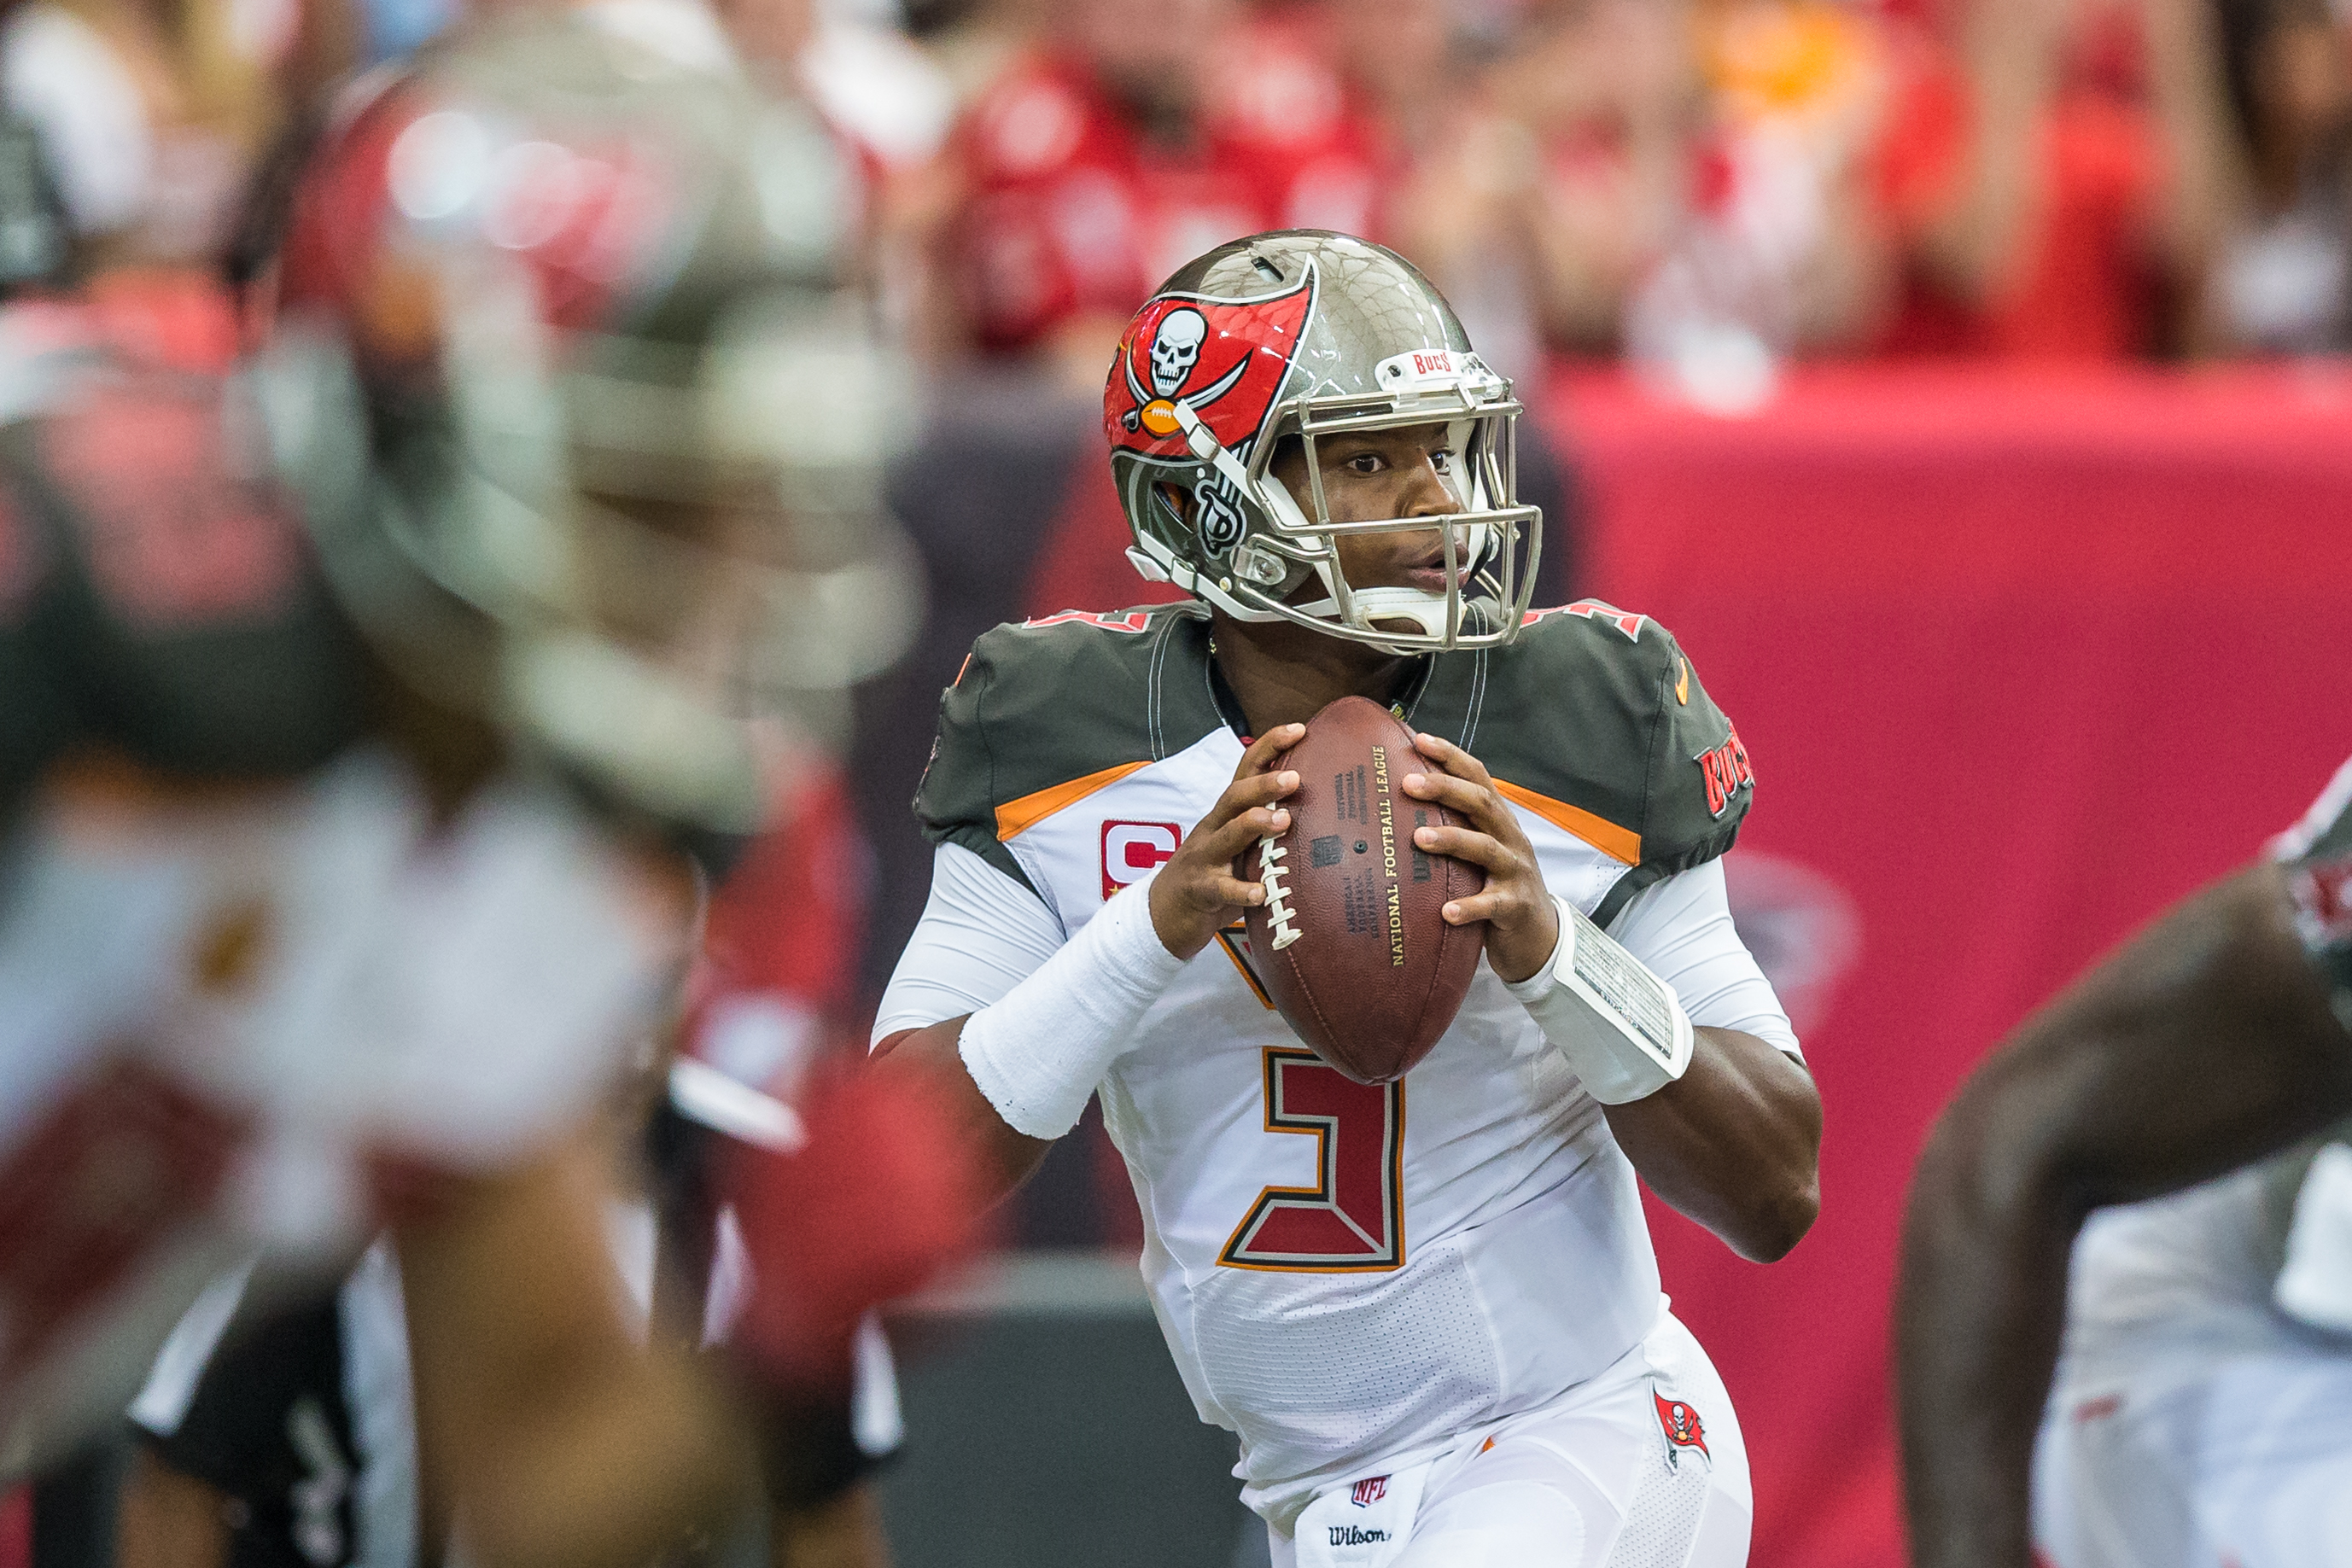 Jameis Winston has to protect the ball better./TRAVIS PENDERGRASS